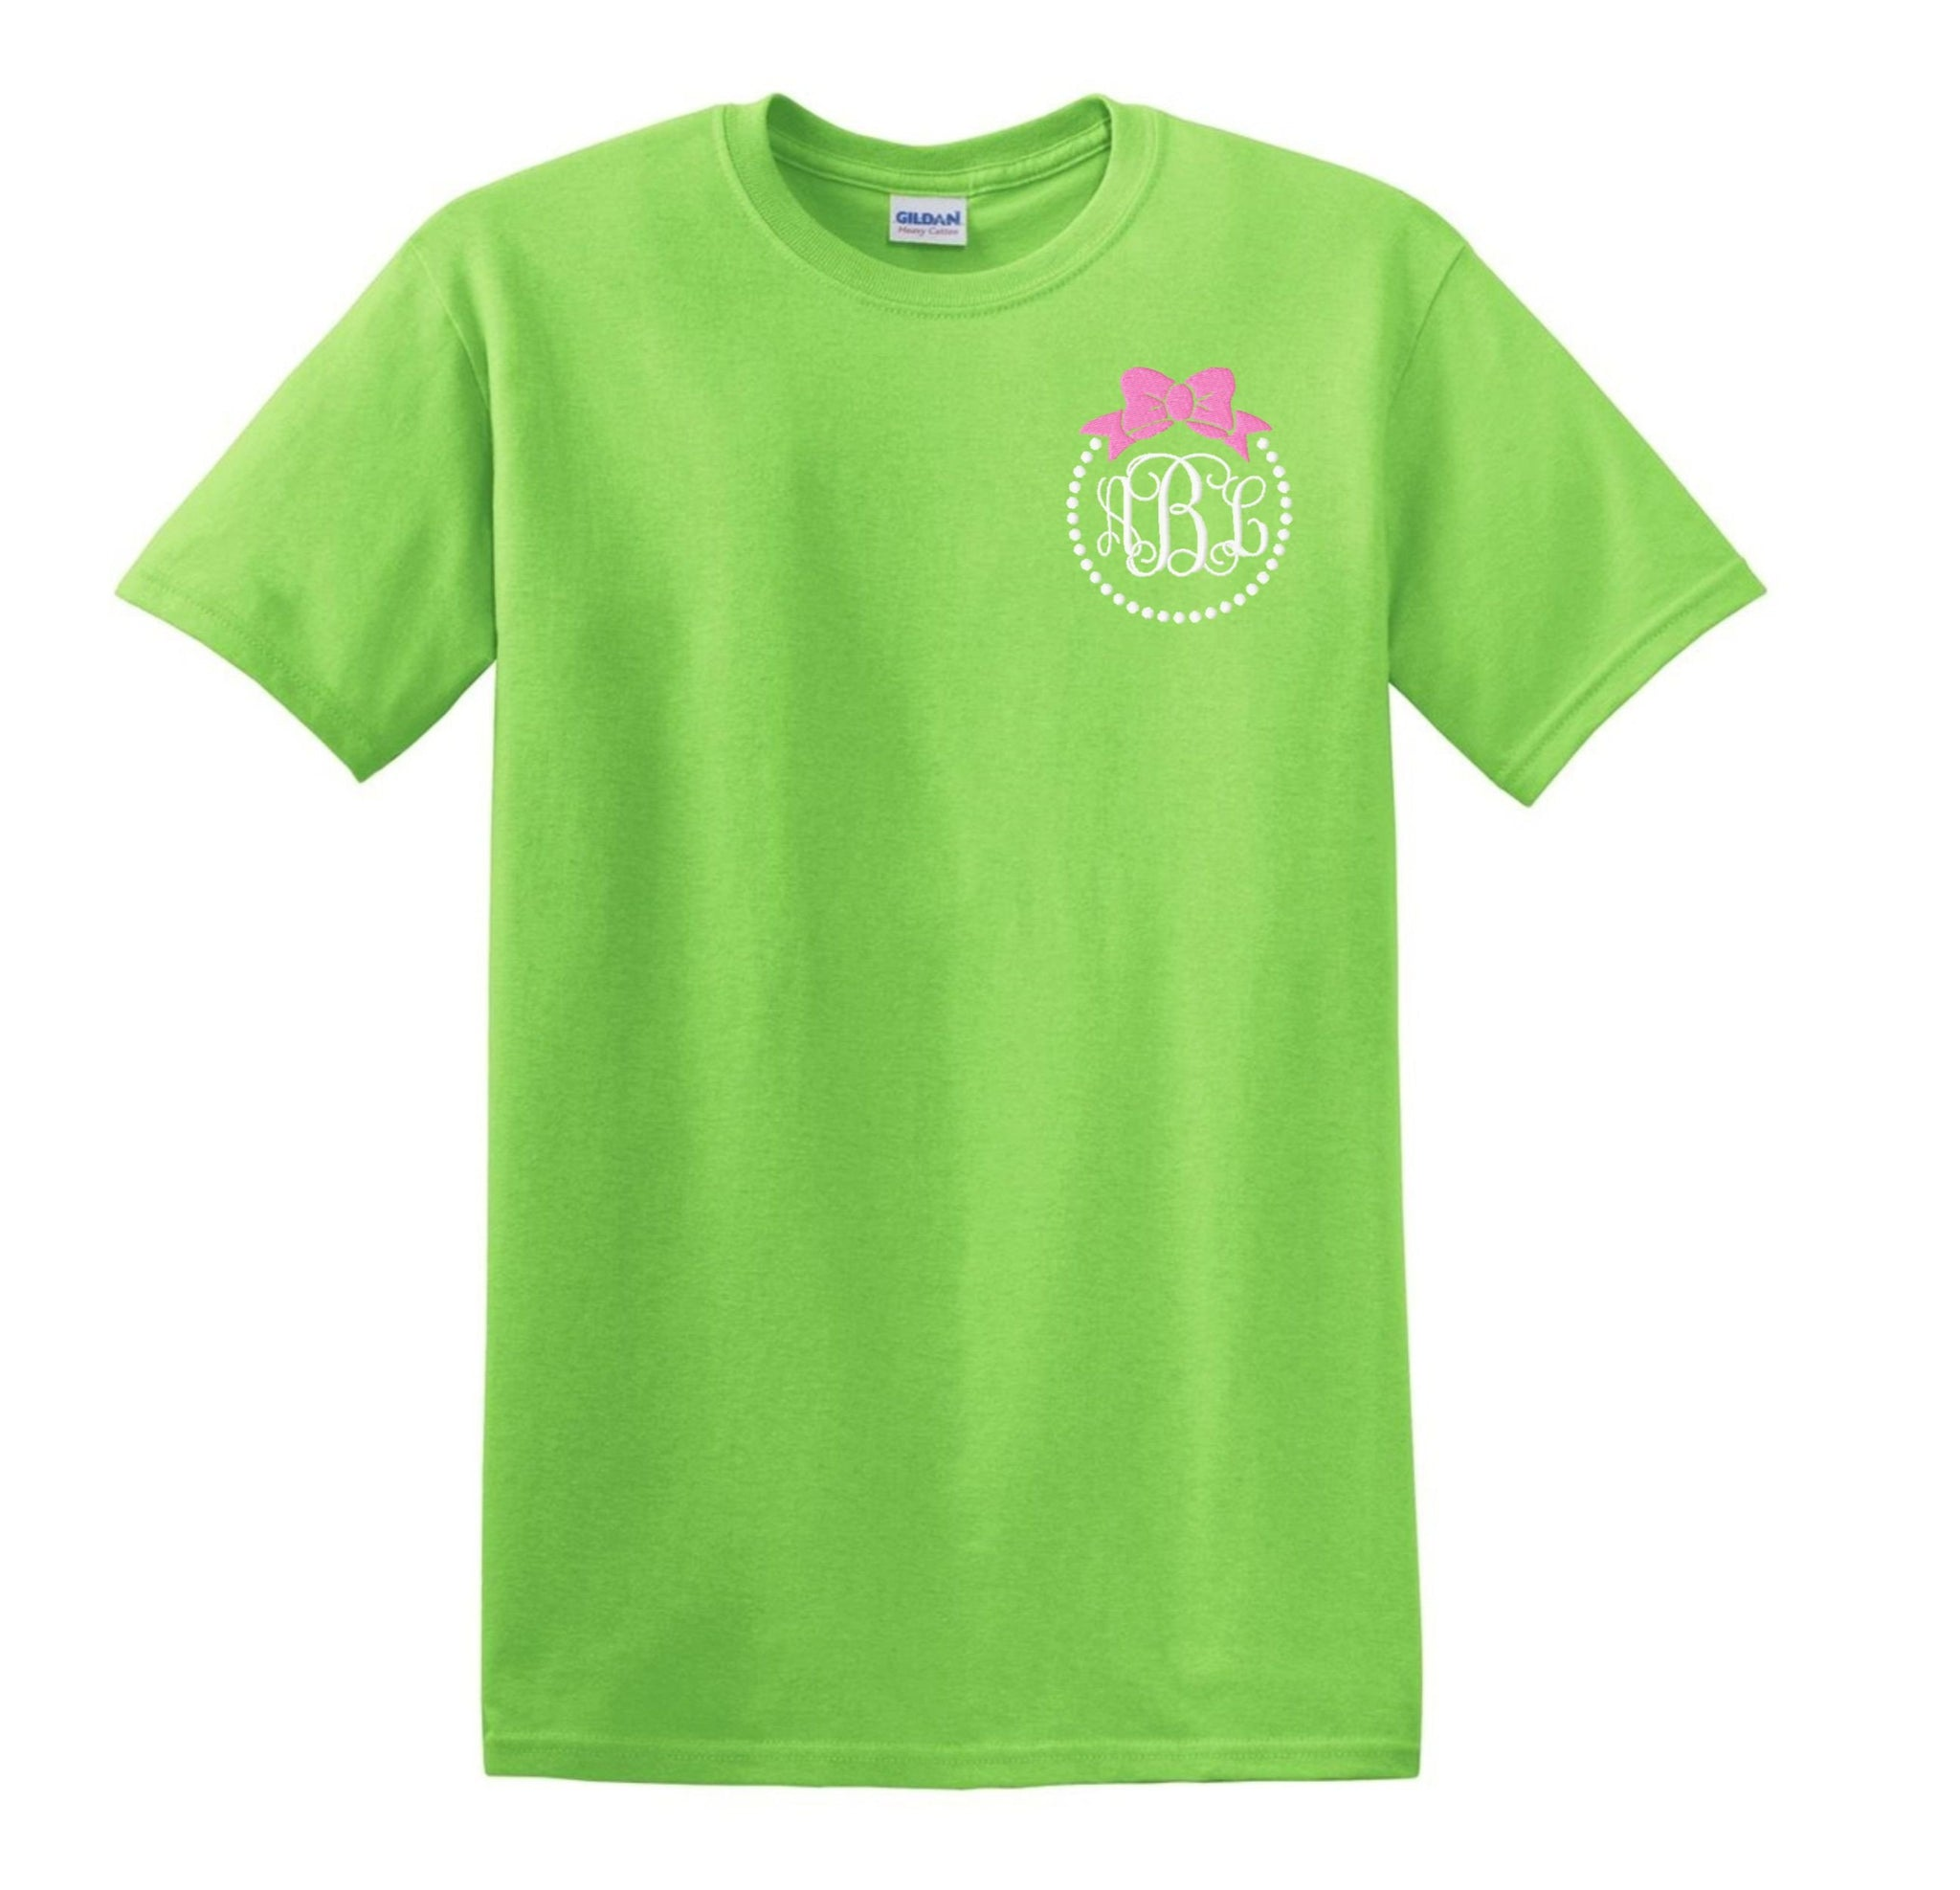 Bow and Pearls Embroidered Monogrammed T-Shirt